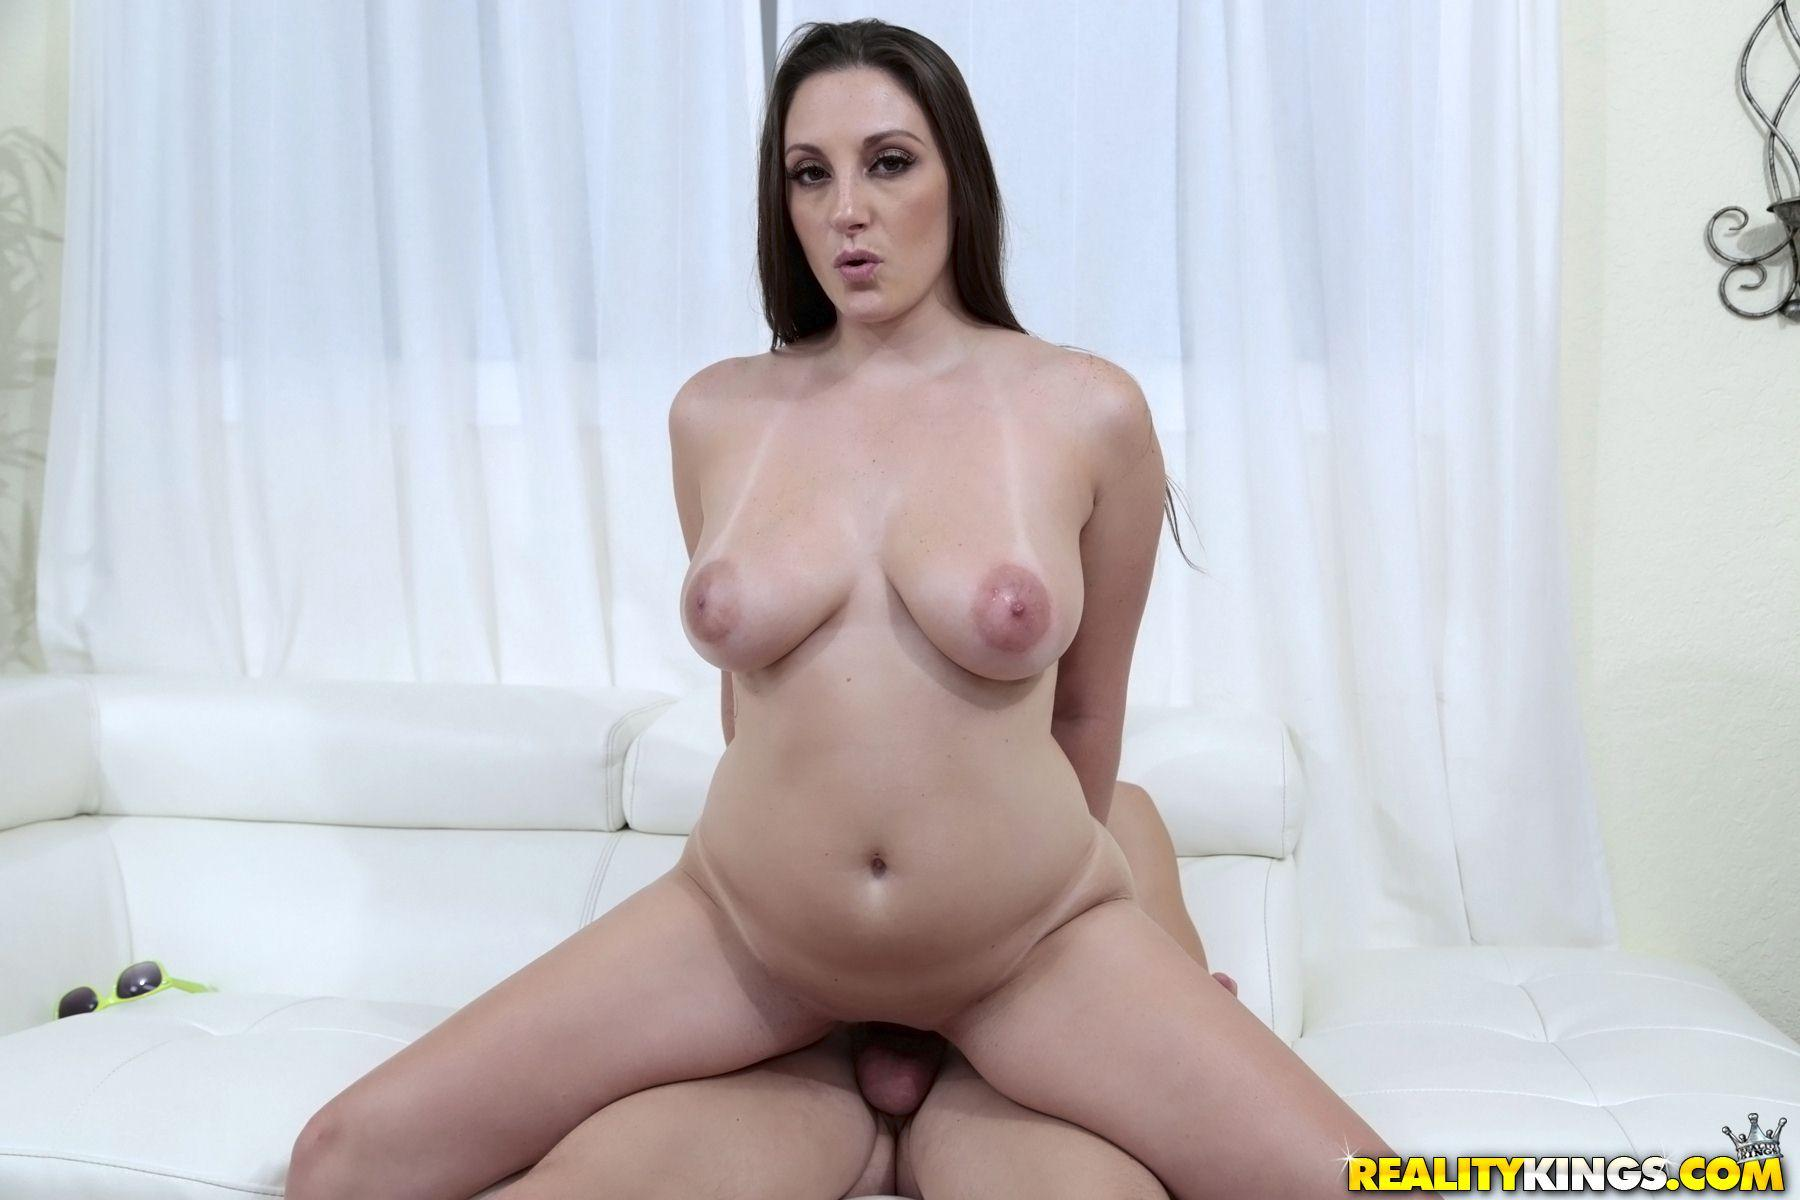 Hottie gets her tight cunt pounded 4